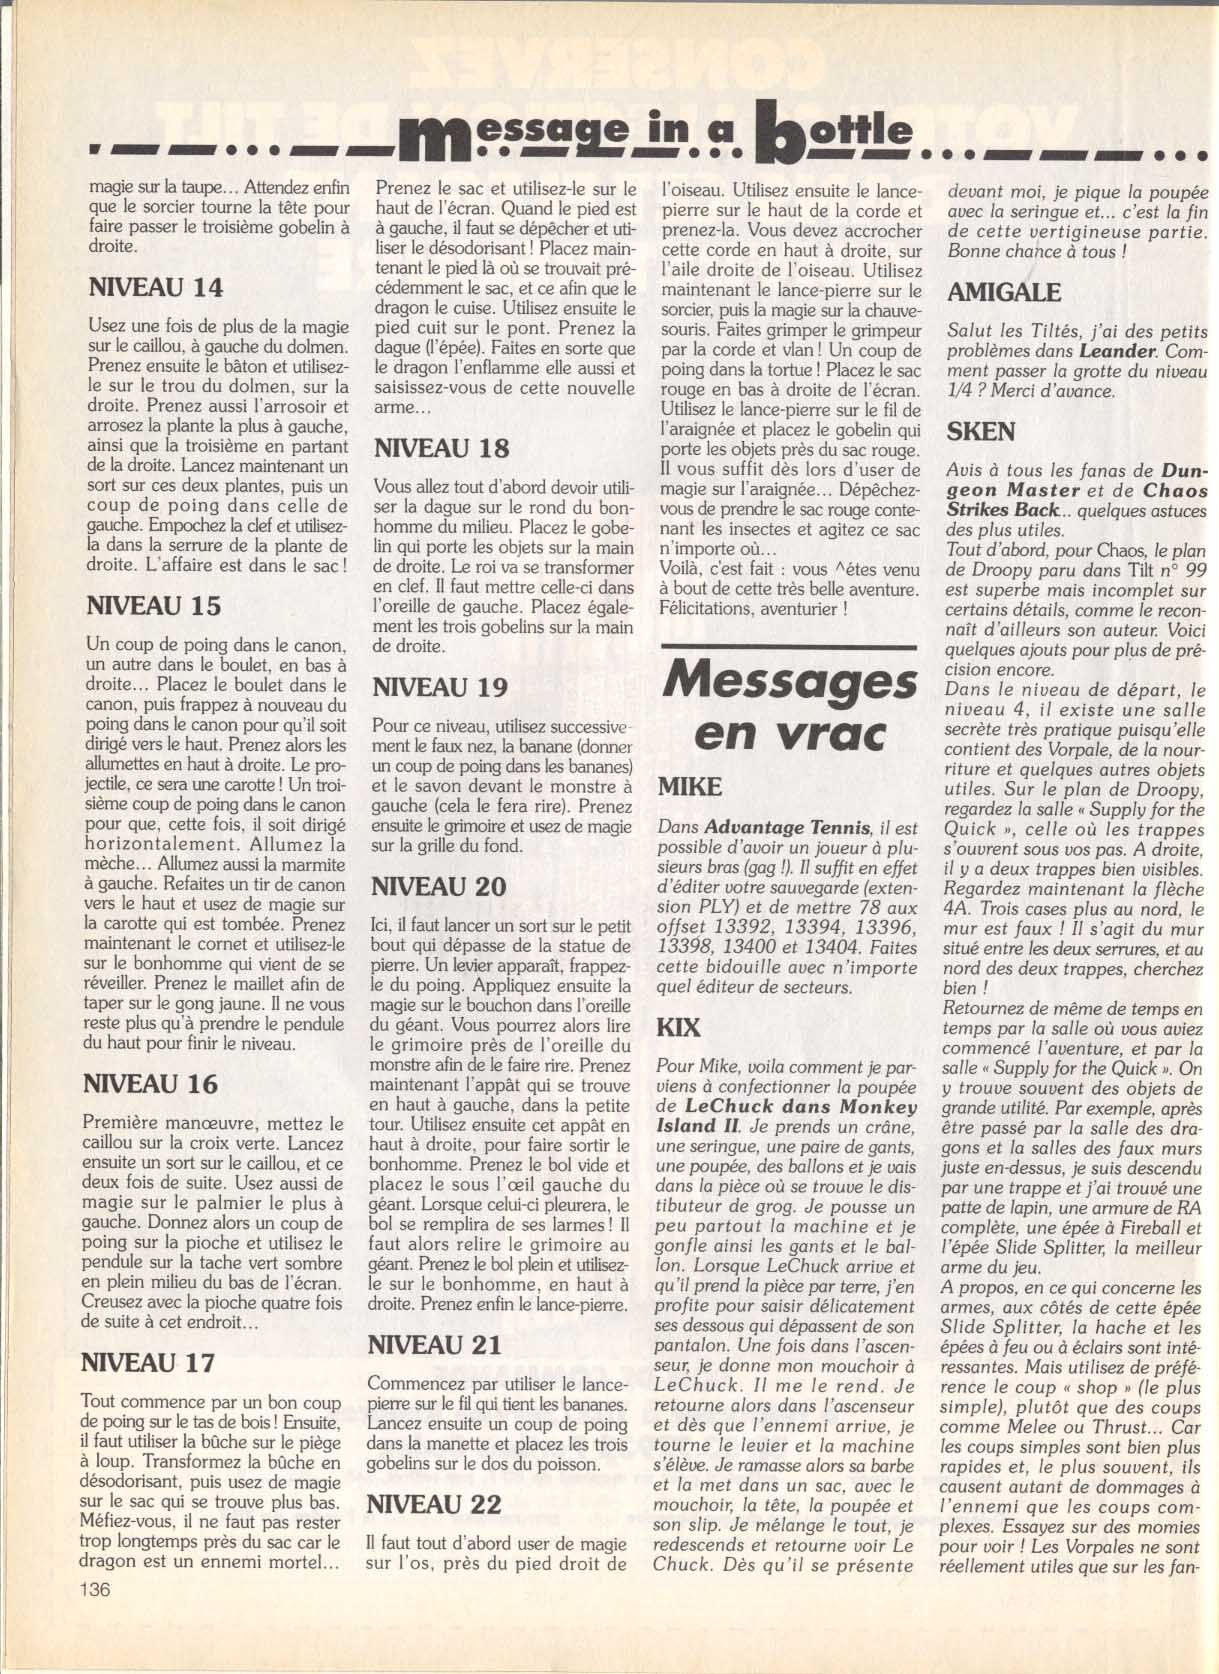 DMCSB-Scan-Hints-Tilt-Issue#103-Jun-1992-Page136.jpg